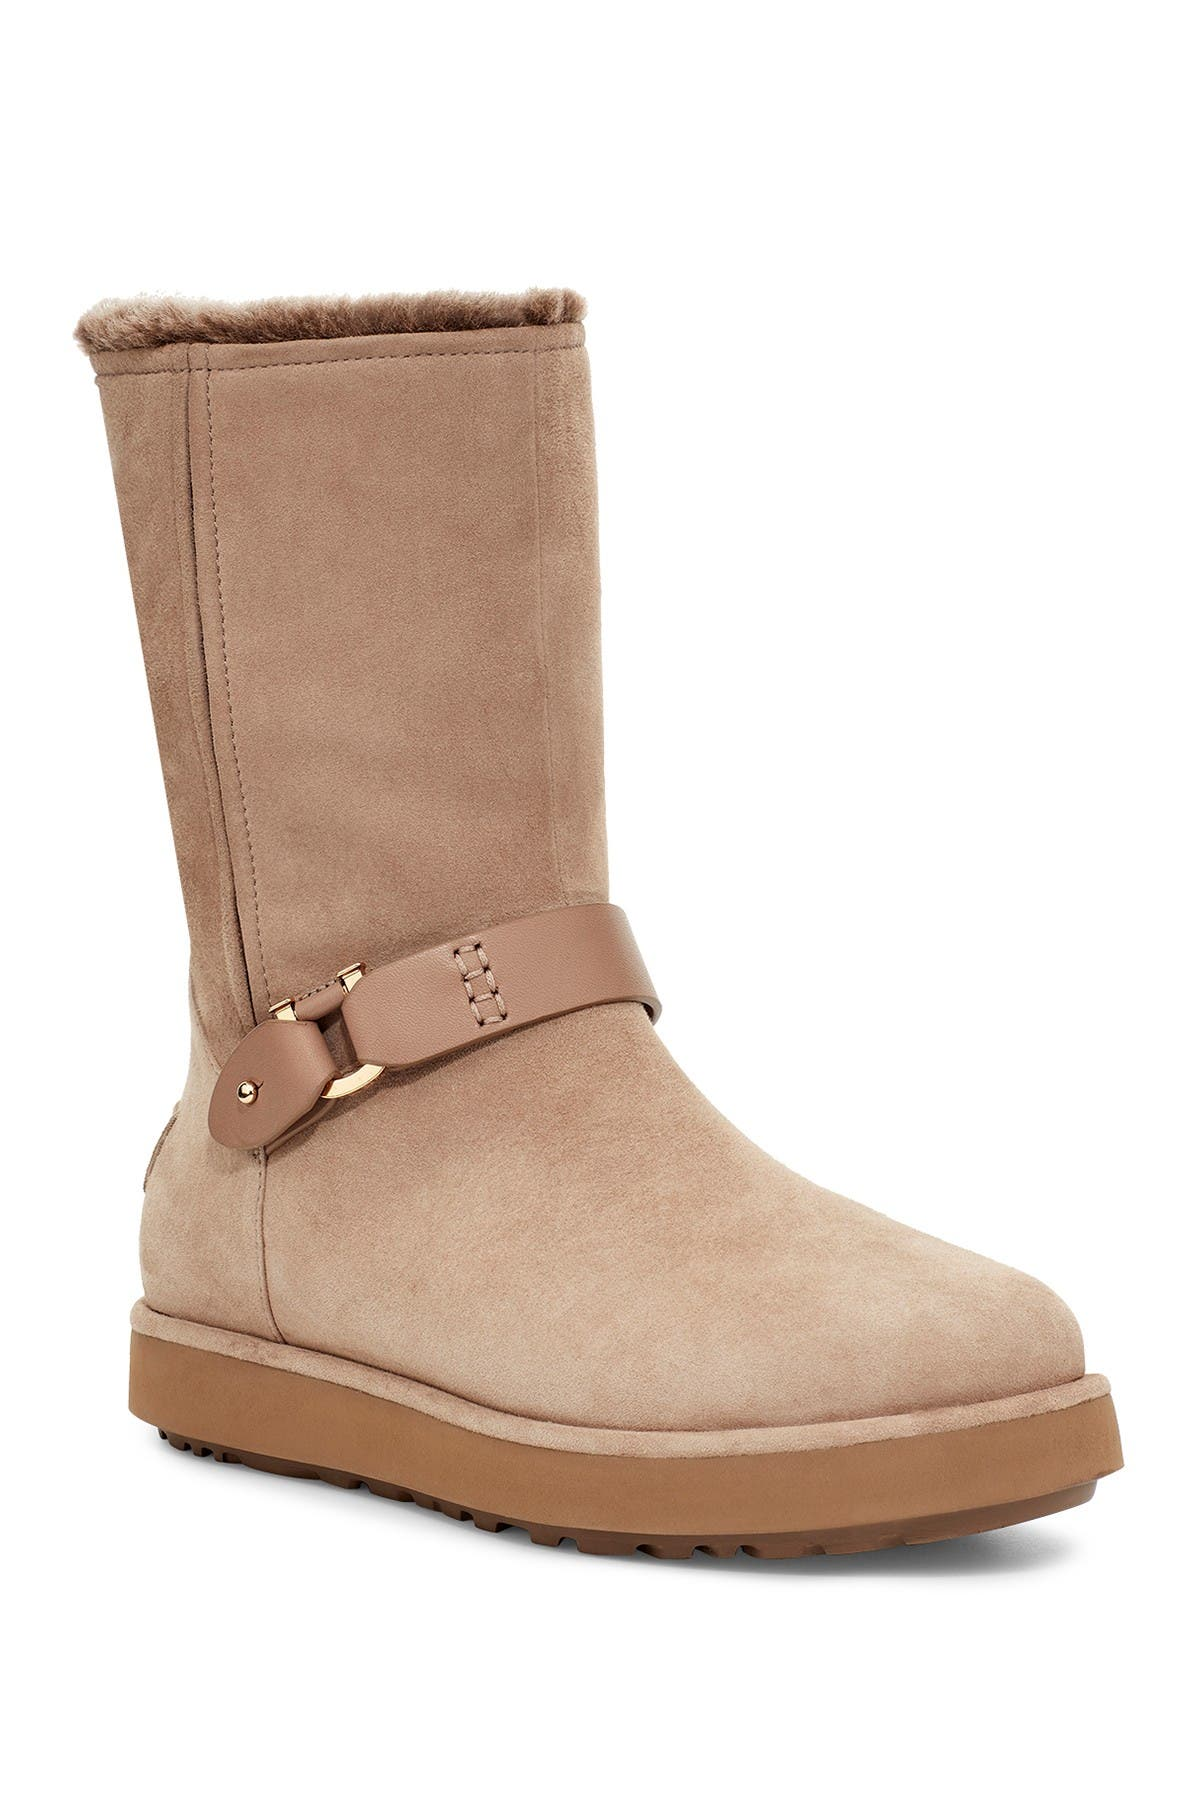 UGG Classic Berge Genuine Shearling Lined Boot